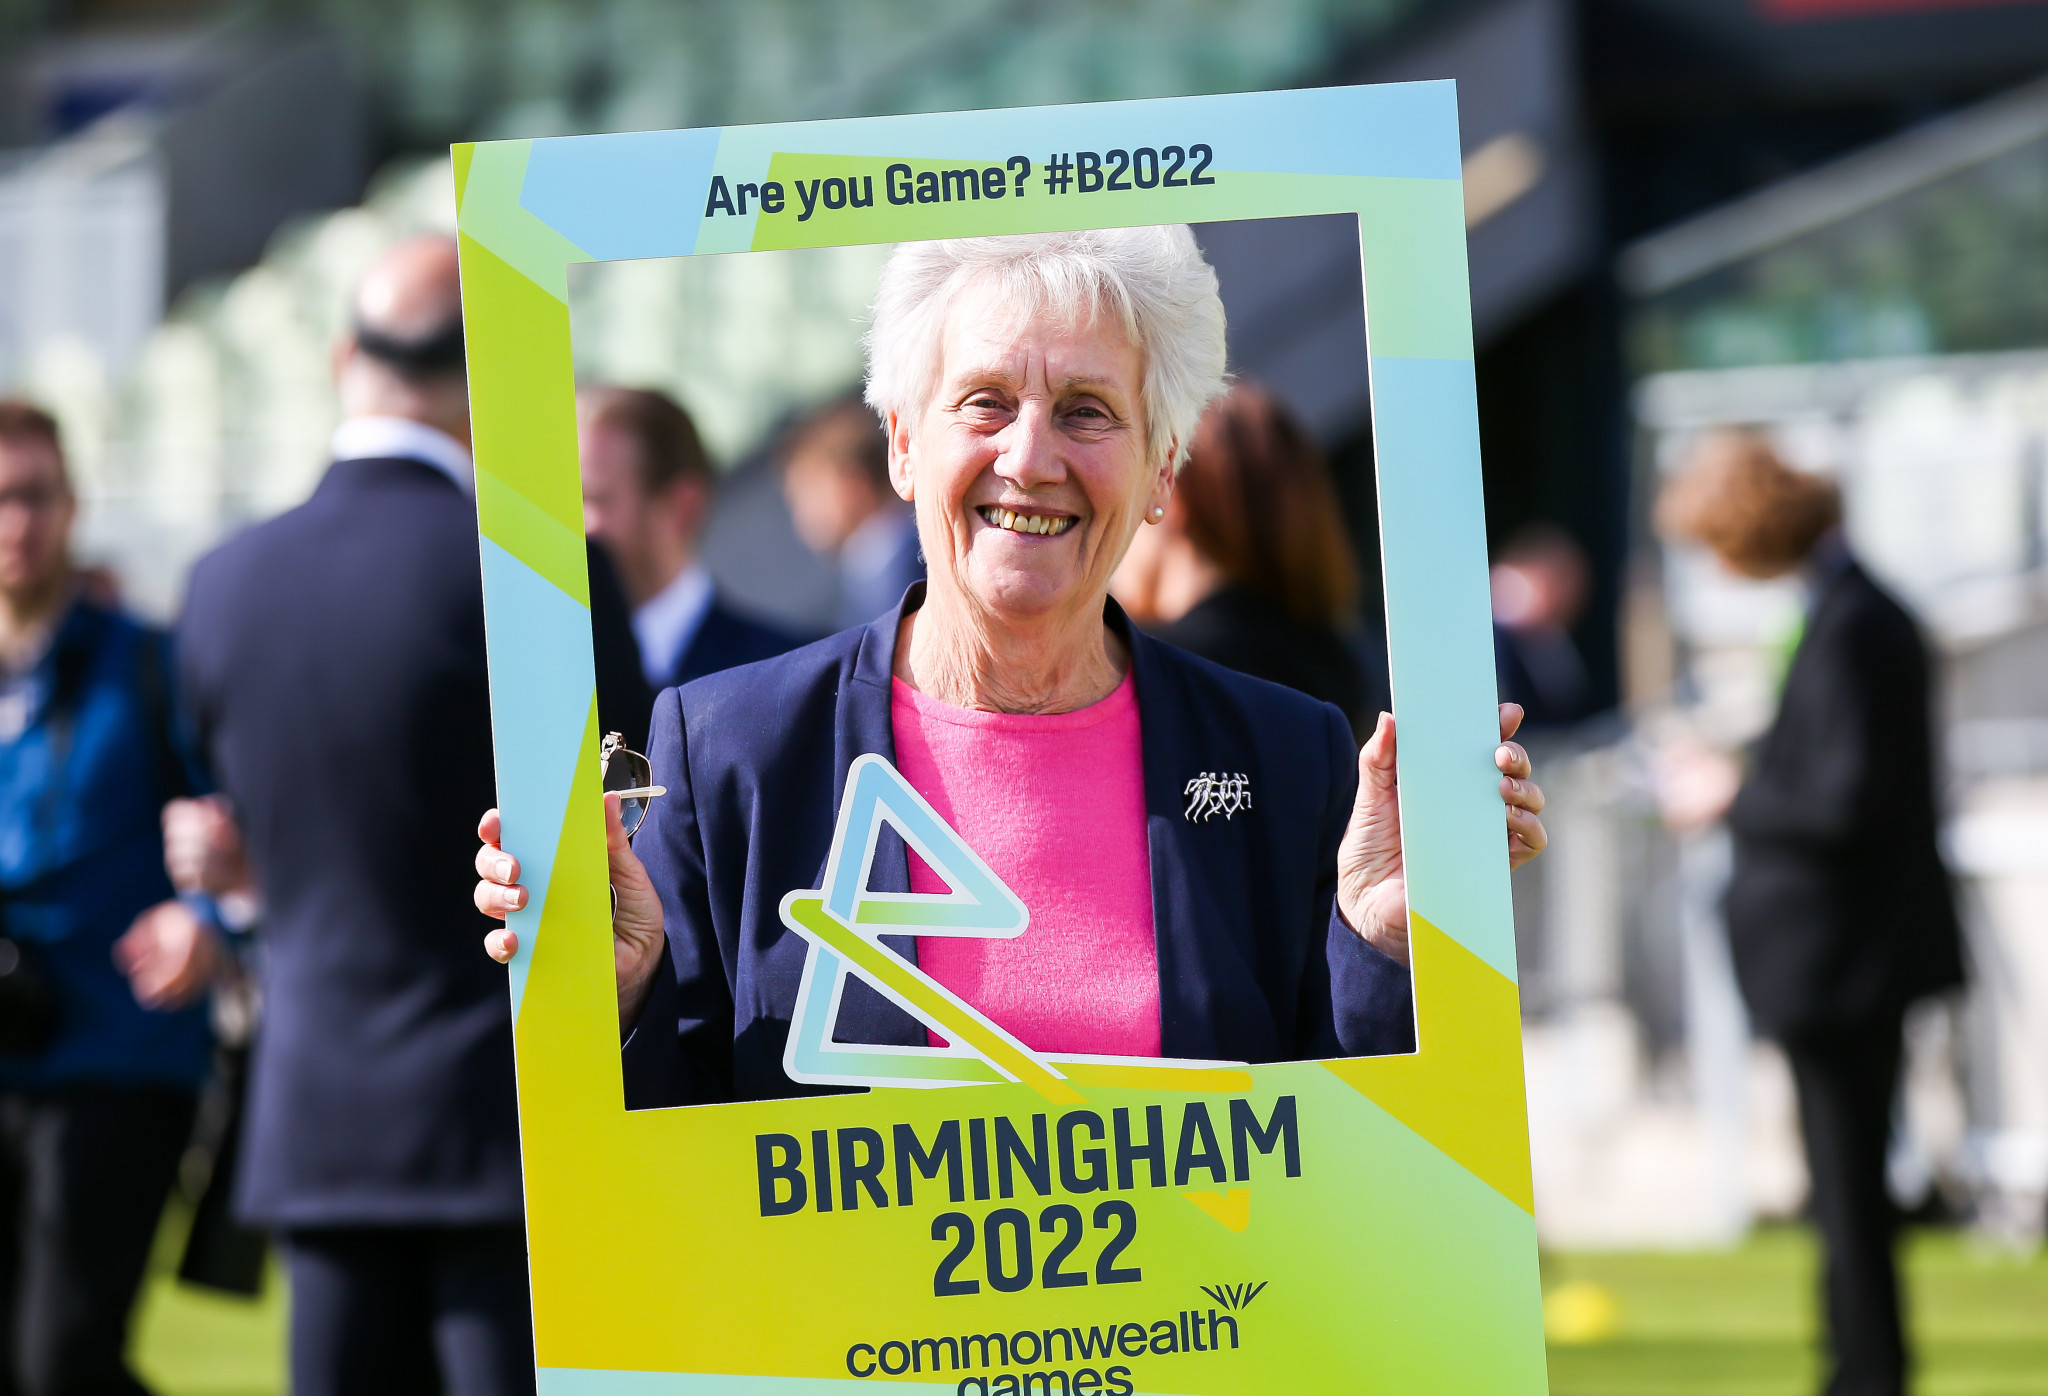 CGF President Dame Louise Martin has temporarily taken Grevemberg's position on the Birmingham 2022 Board ©Getty Images